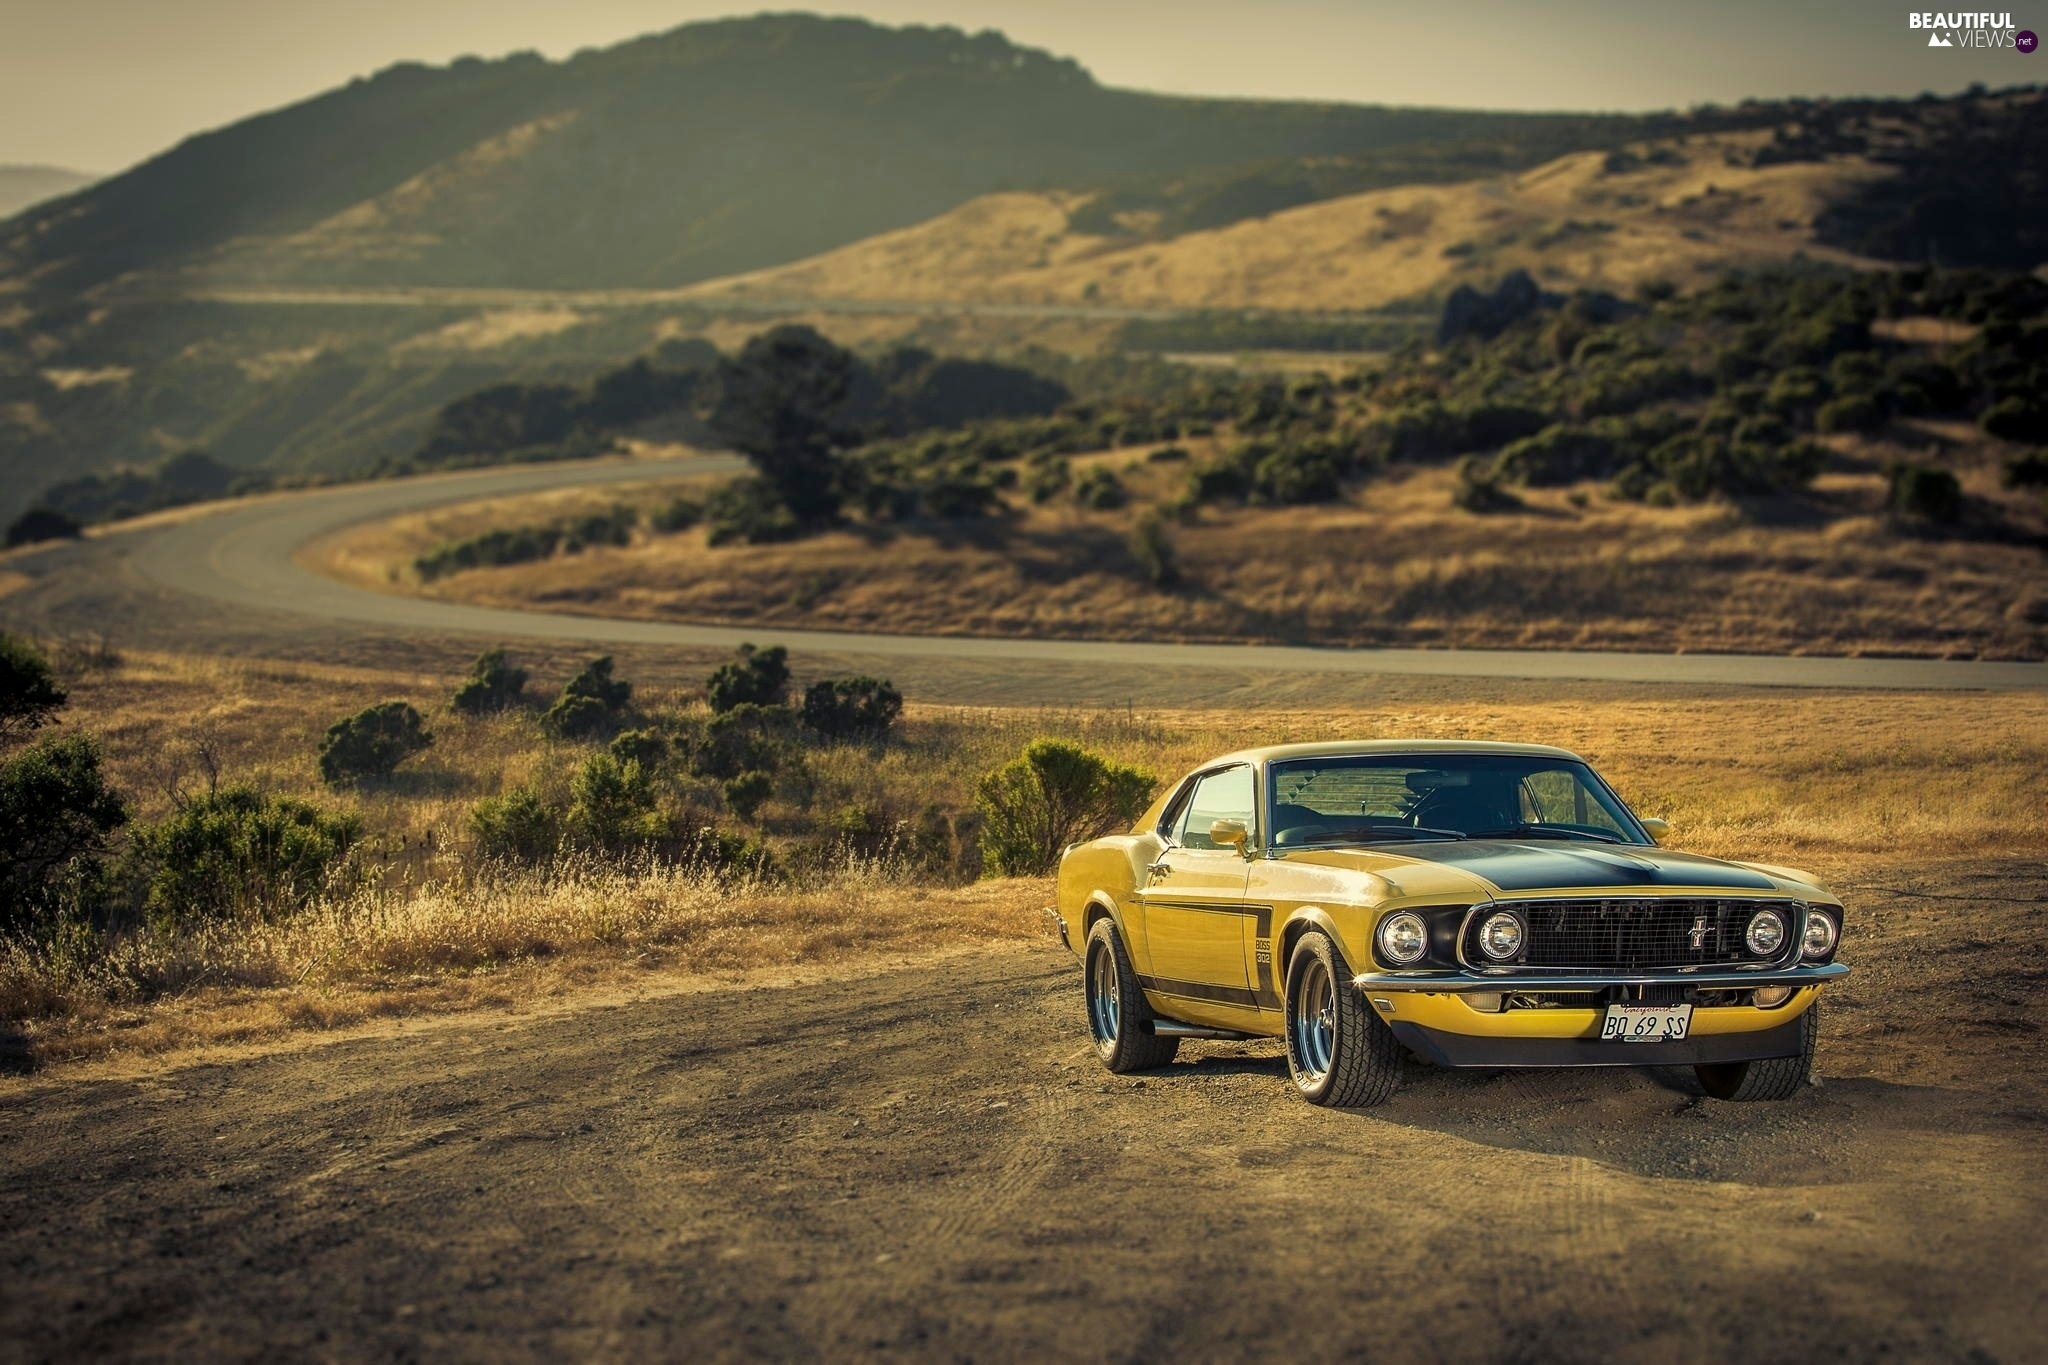 Ford, Way, Mountains, Mustang